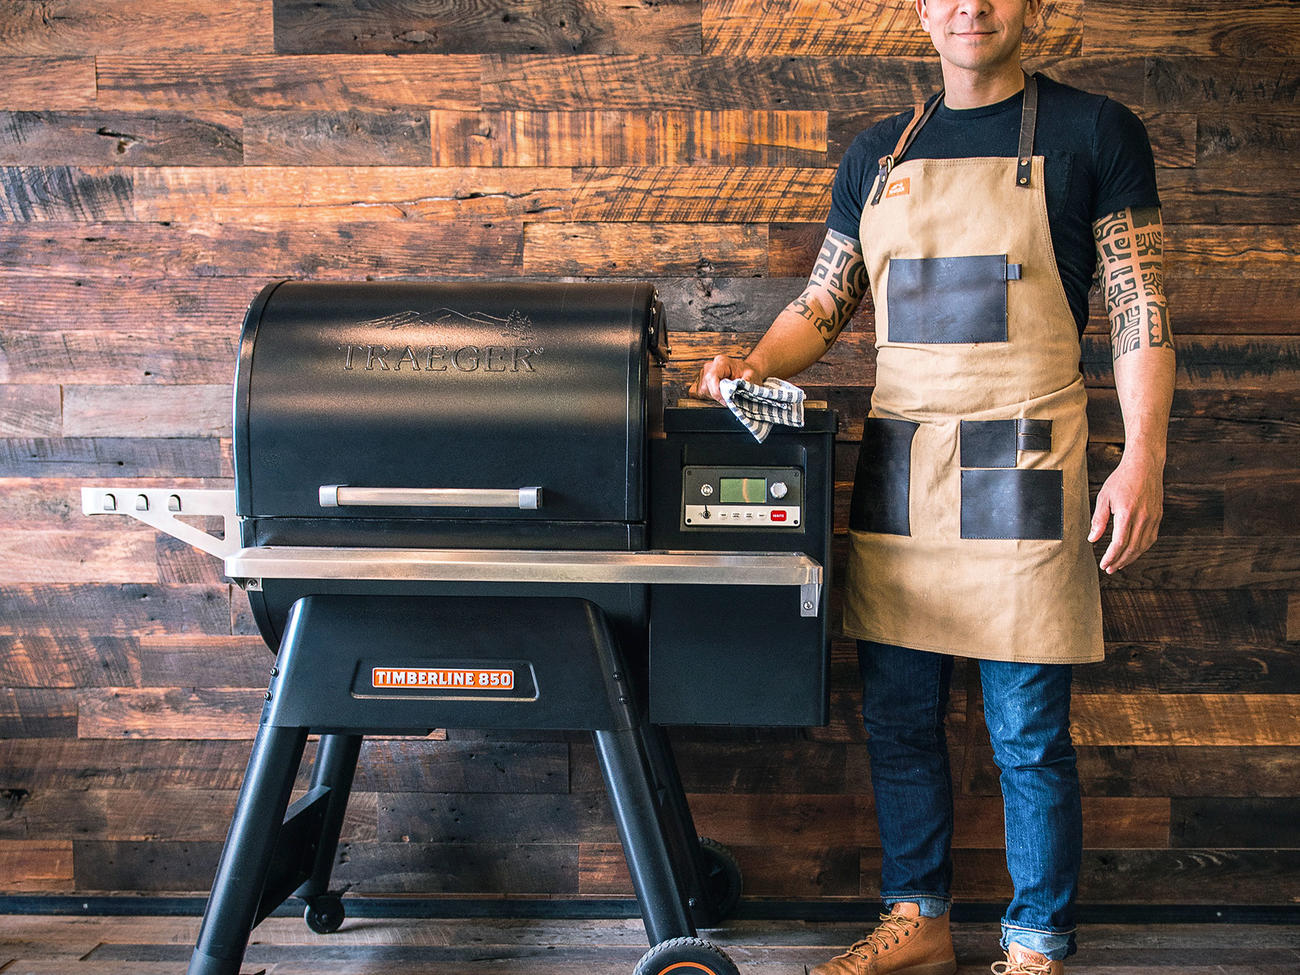 8 Best Grills on the Market